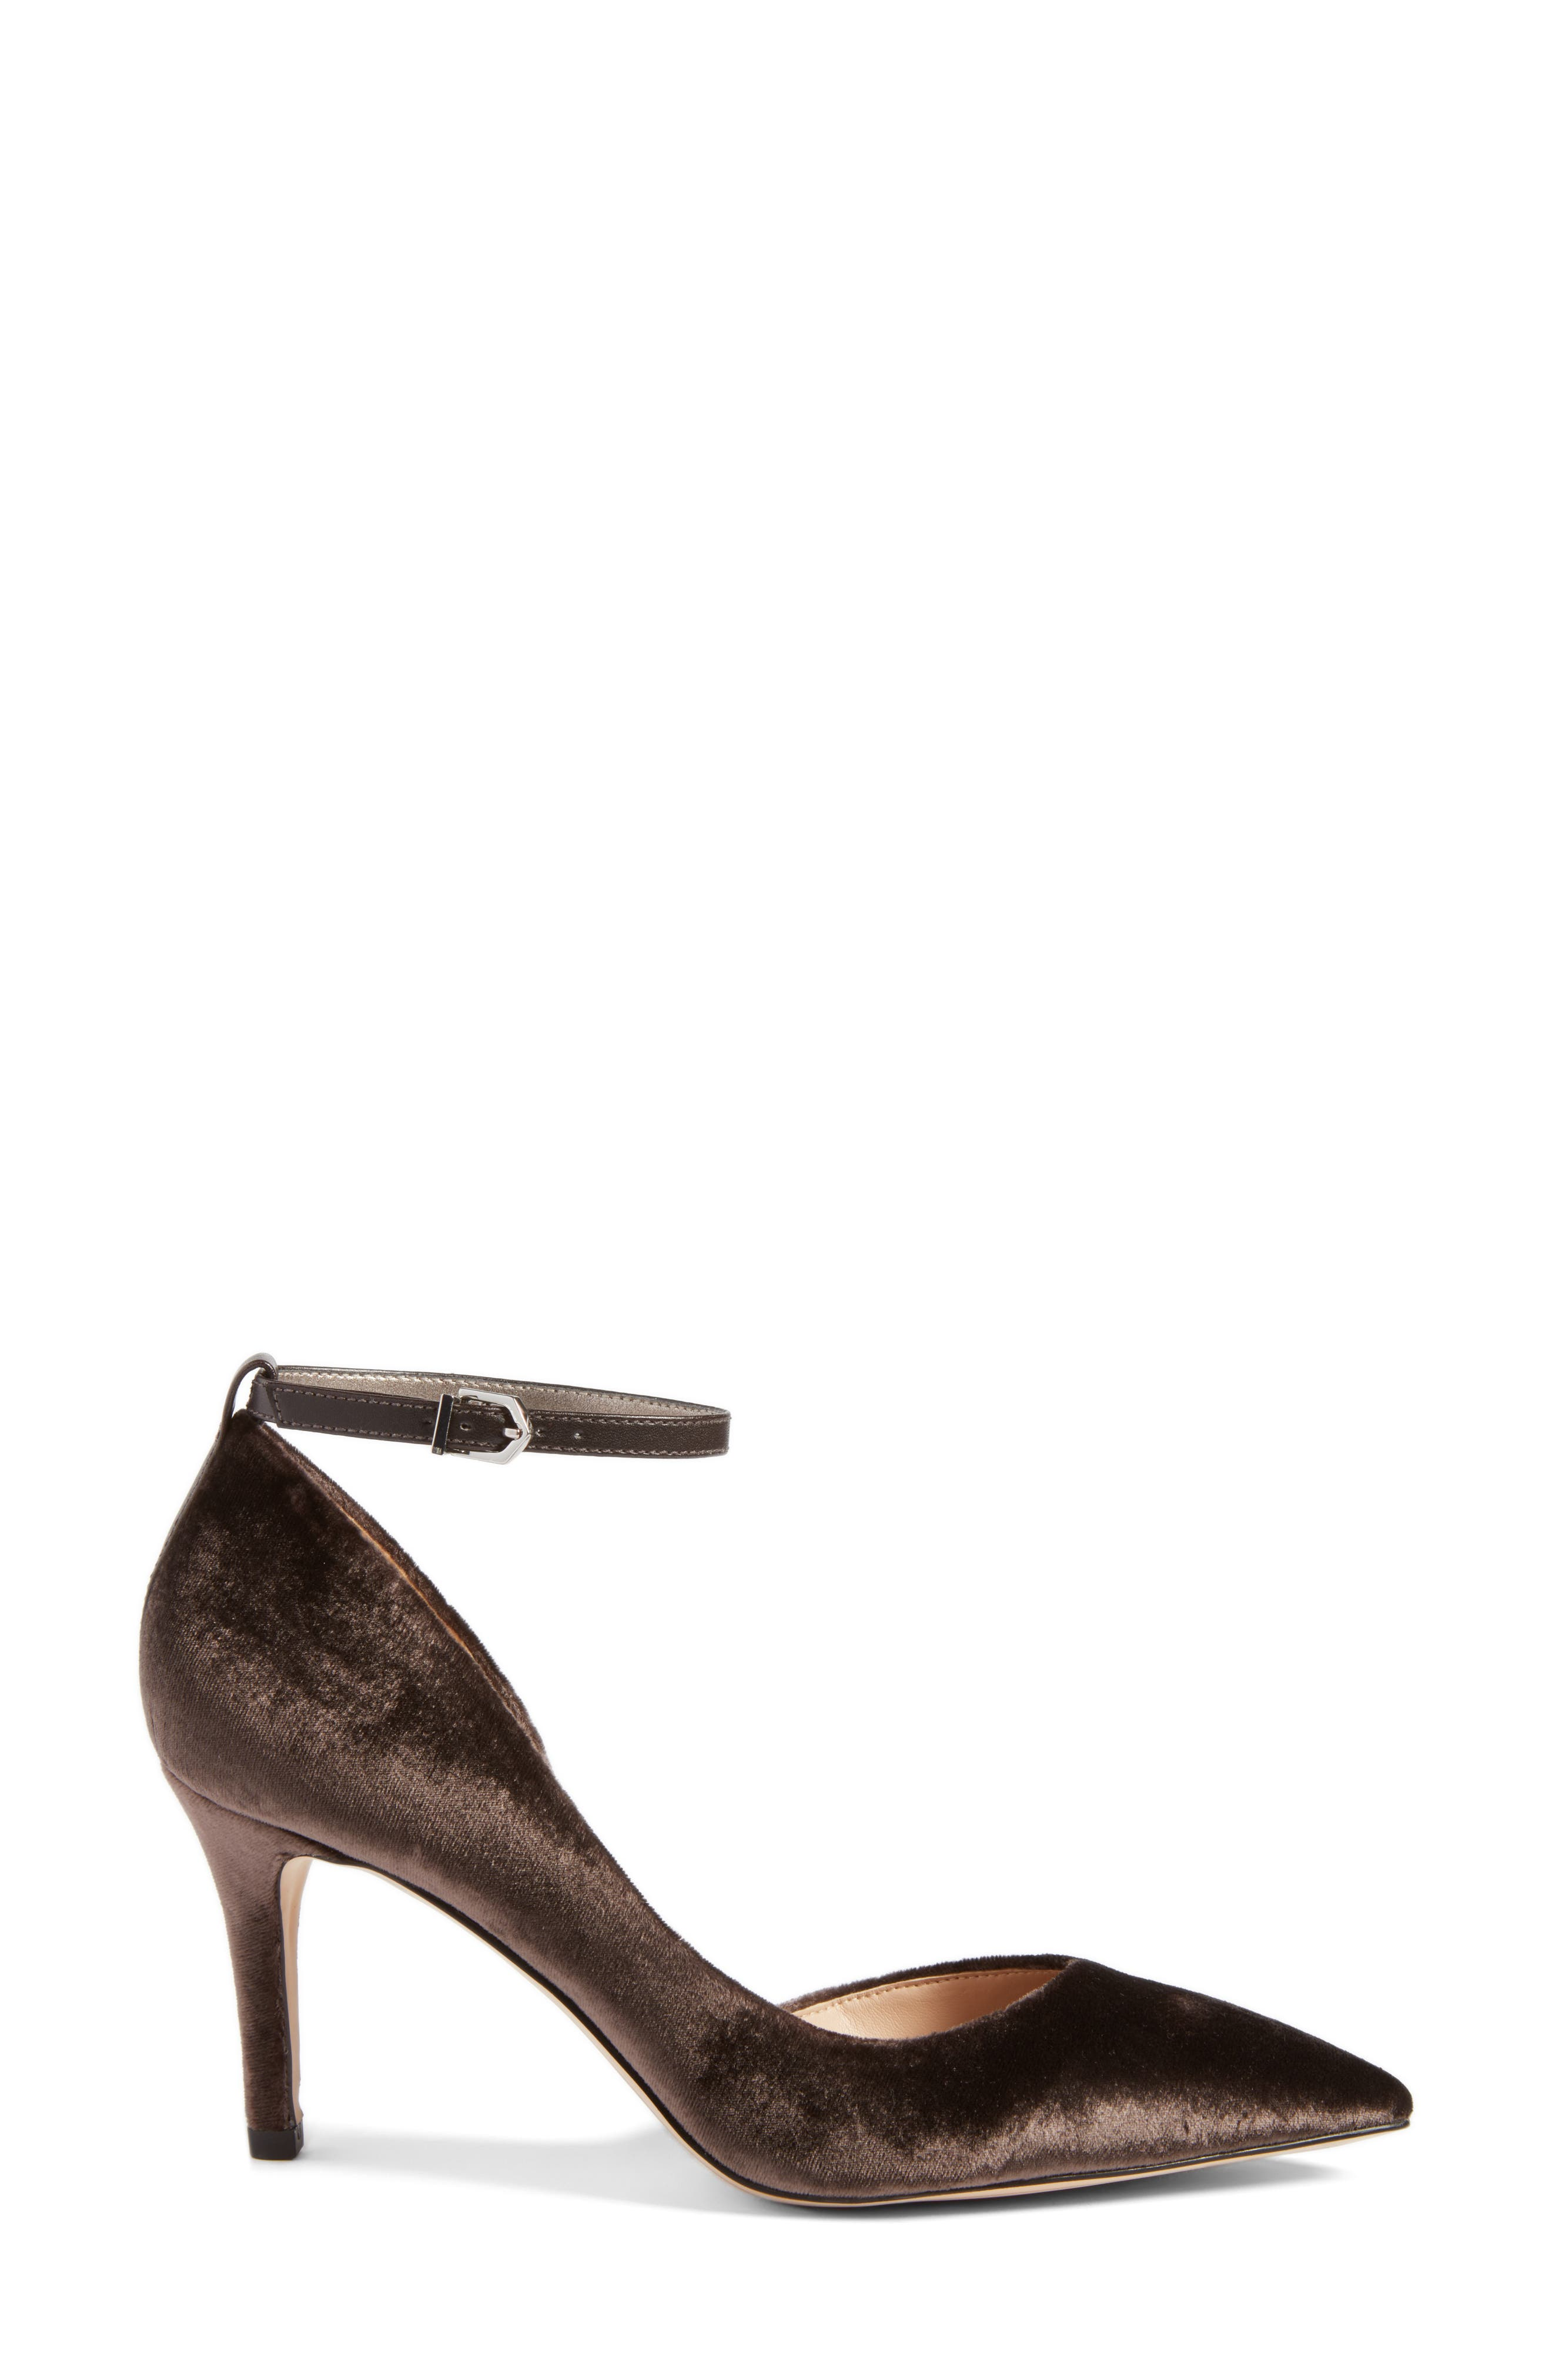 Tia Genuine Calf Hair Pump,                             Alternate thumbnail 3, color,                             023